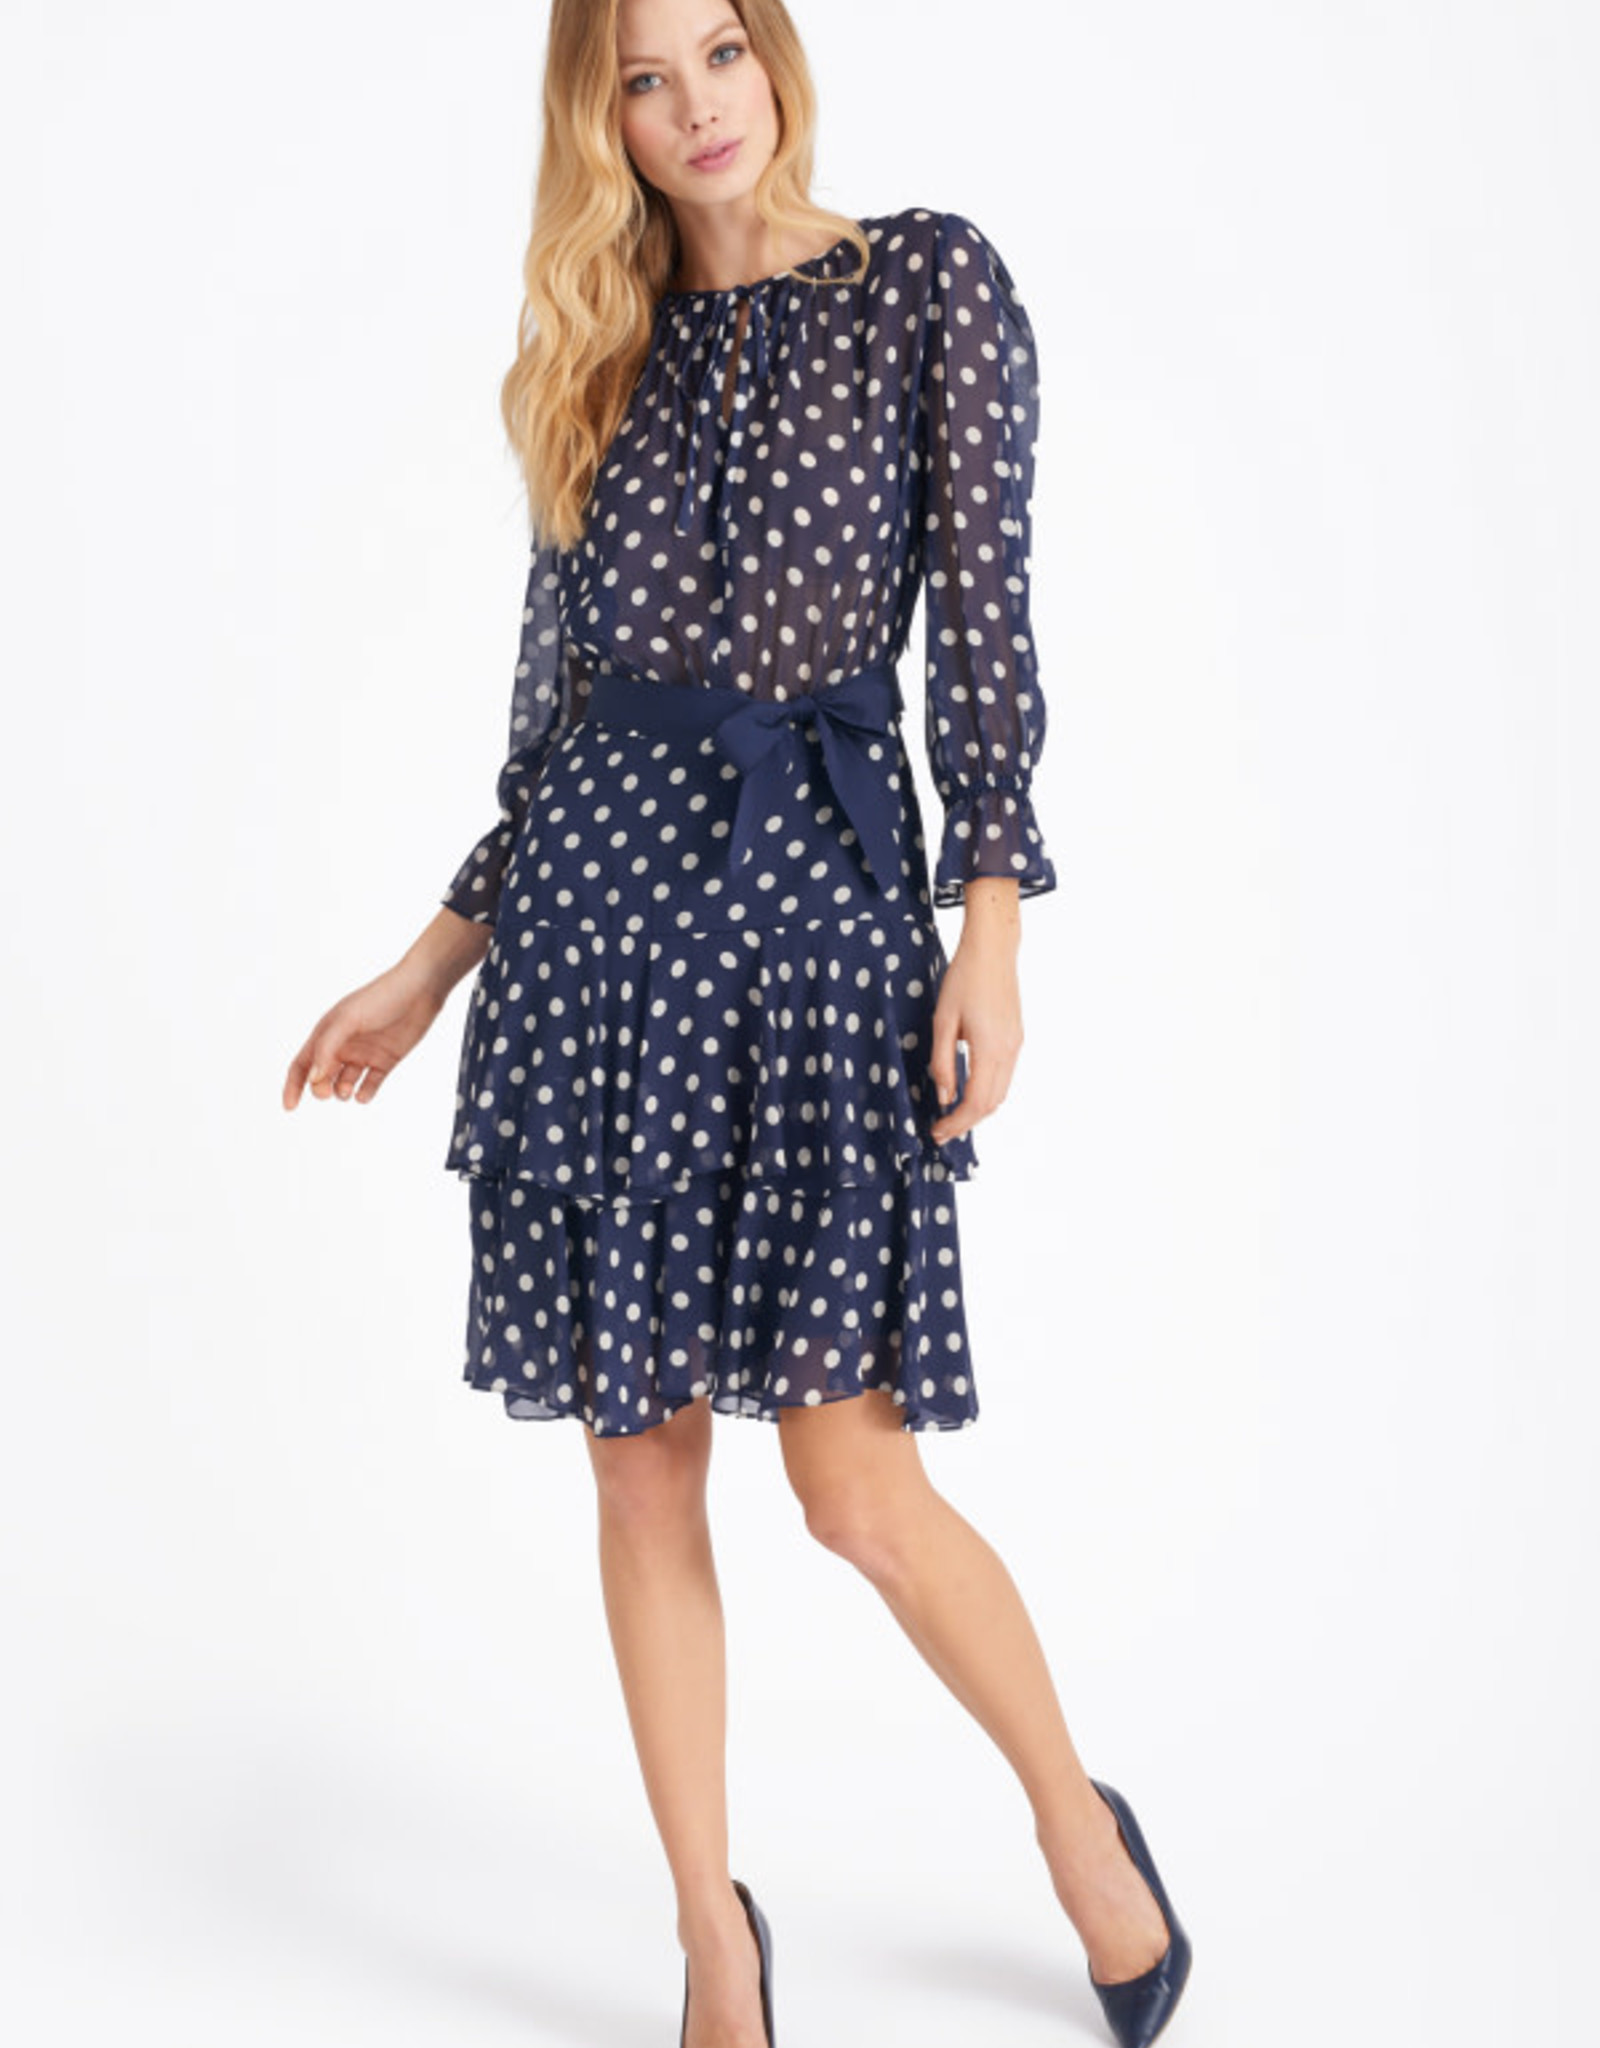 Luisa Spagnoli Printed Viscose Dress